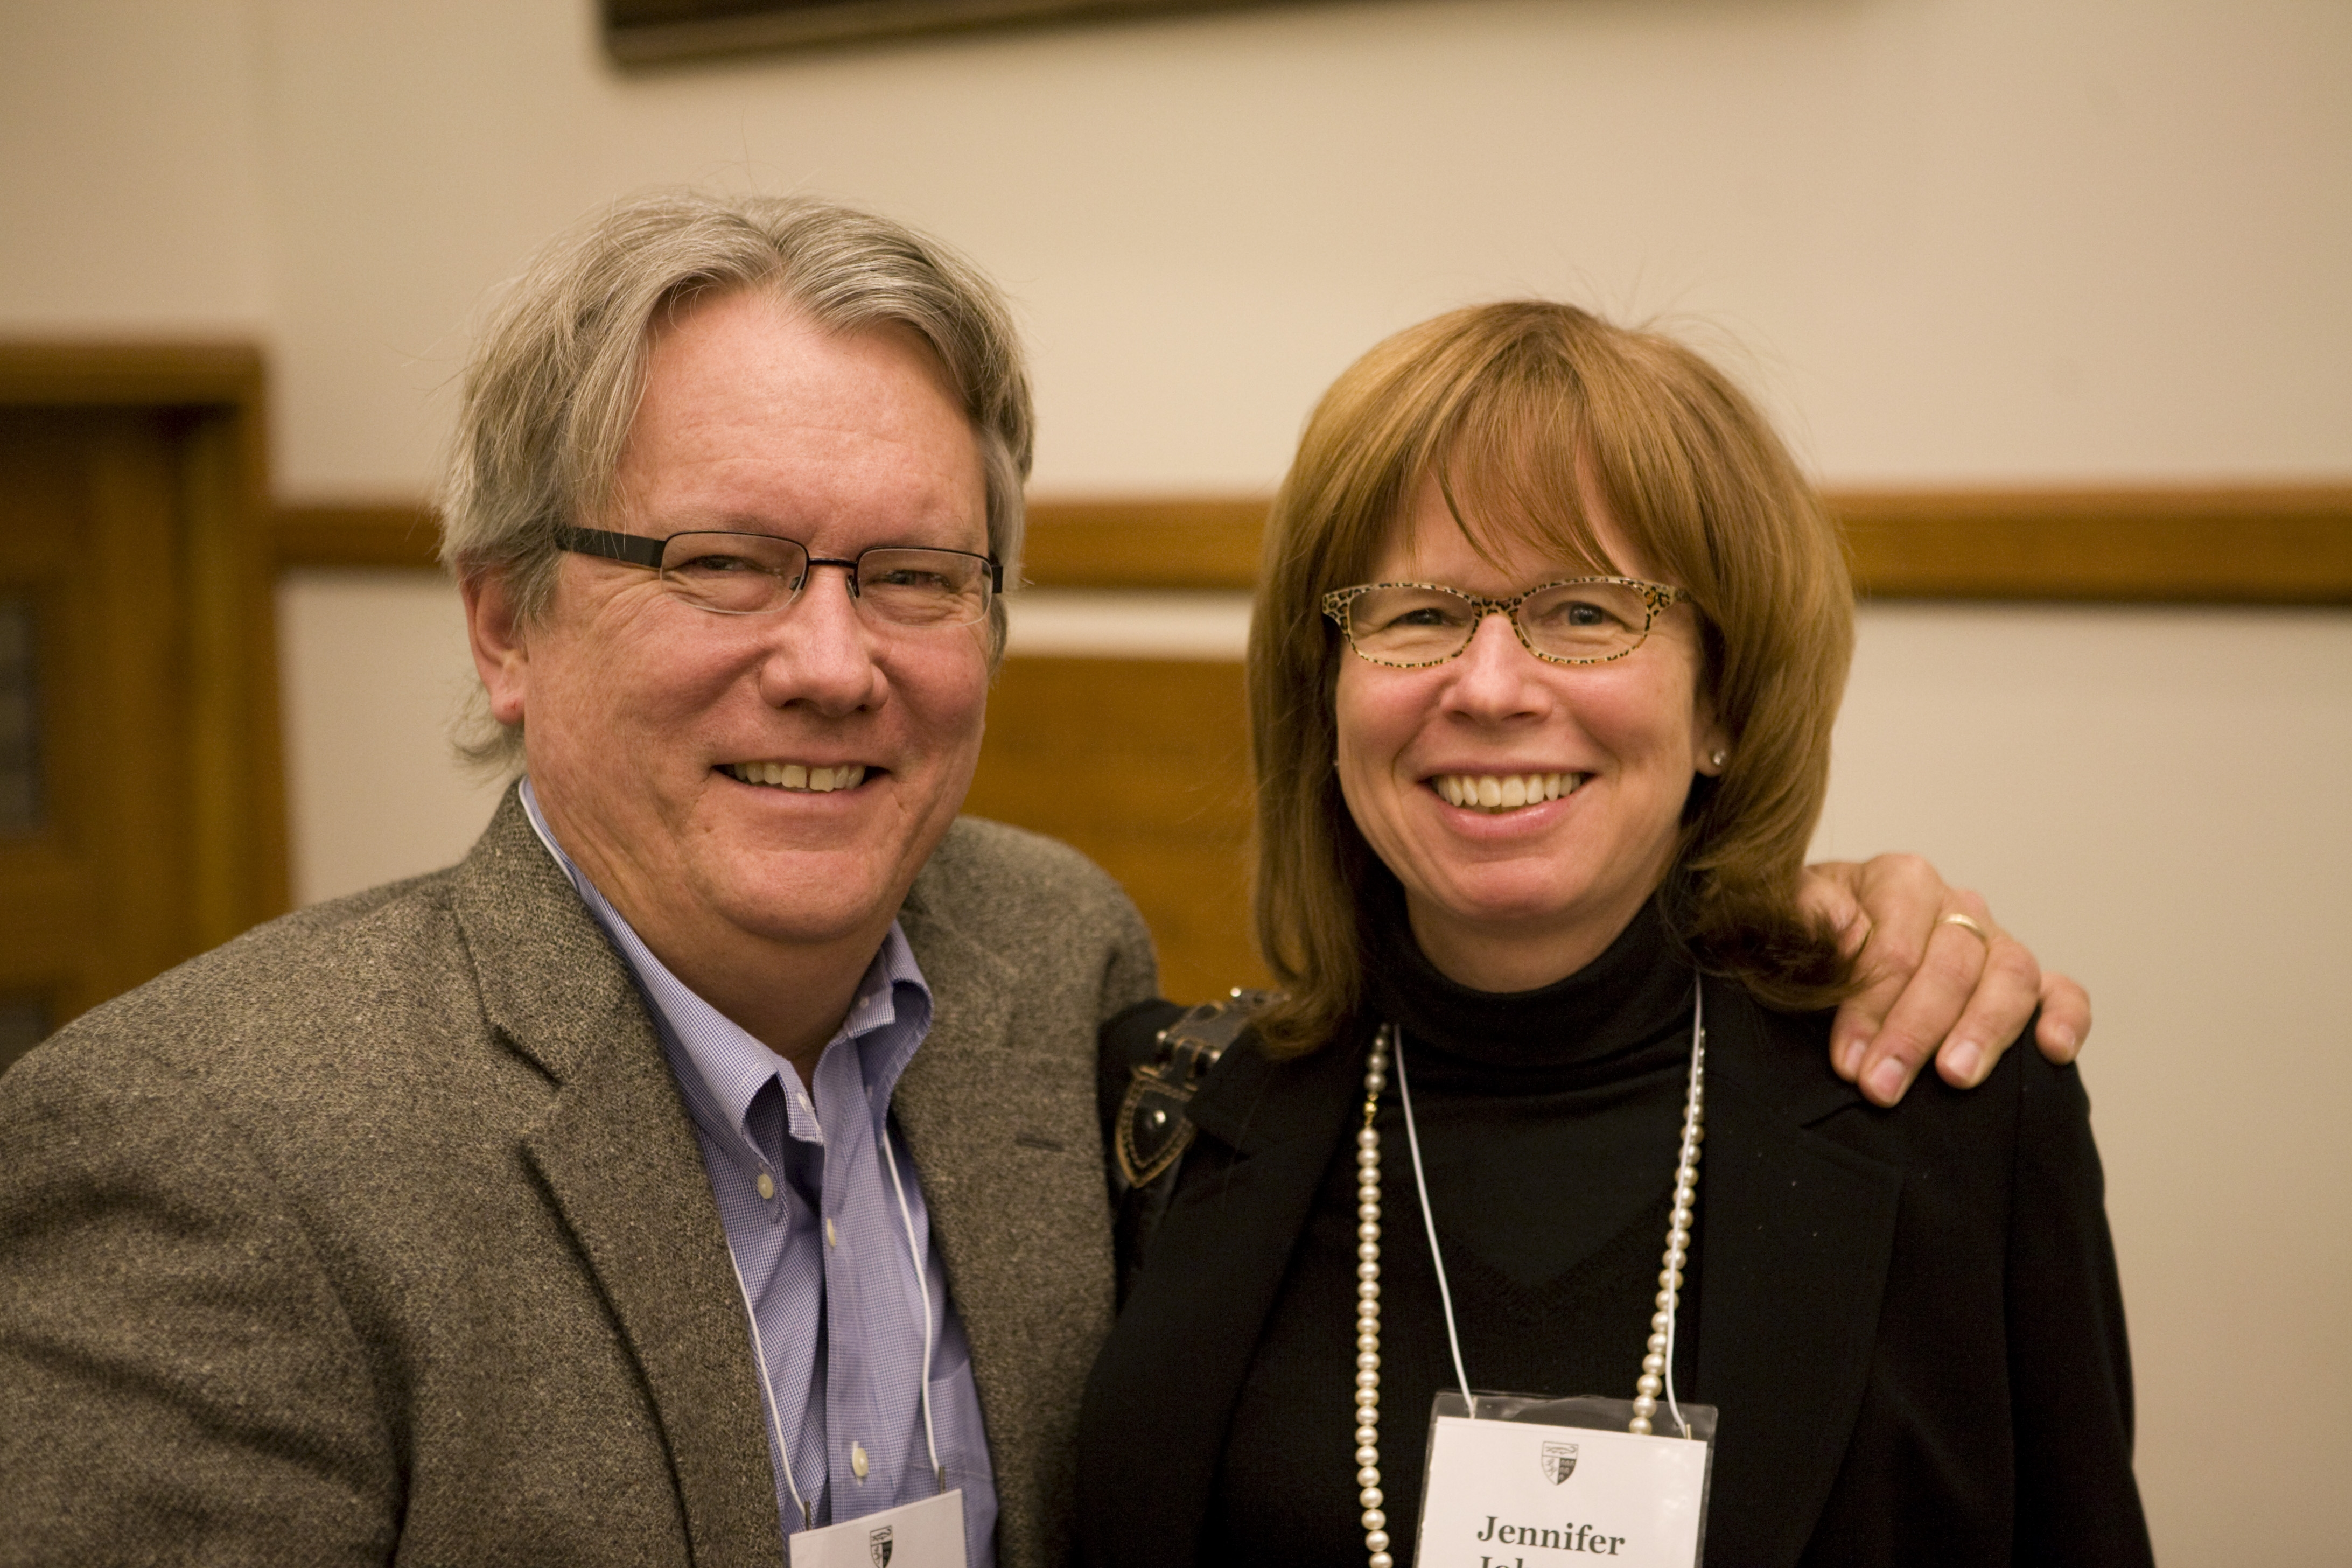 Maryland Law Prof. Richard Booth '76 and Lewis & Clark Law Prof. Jennifer Johnson '76